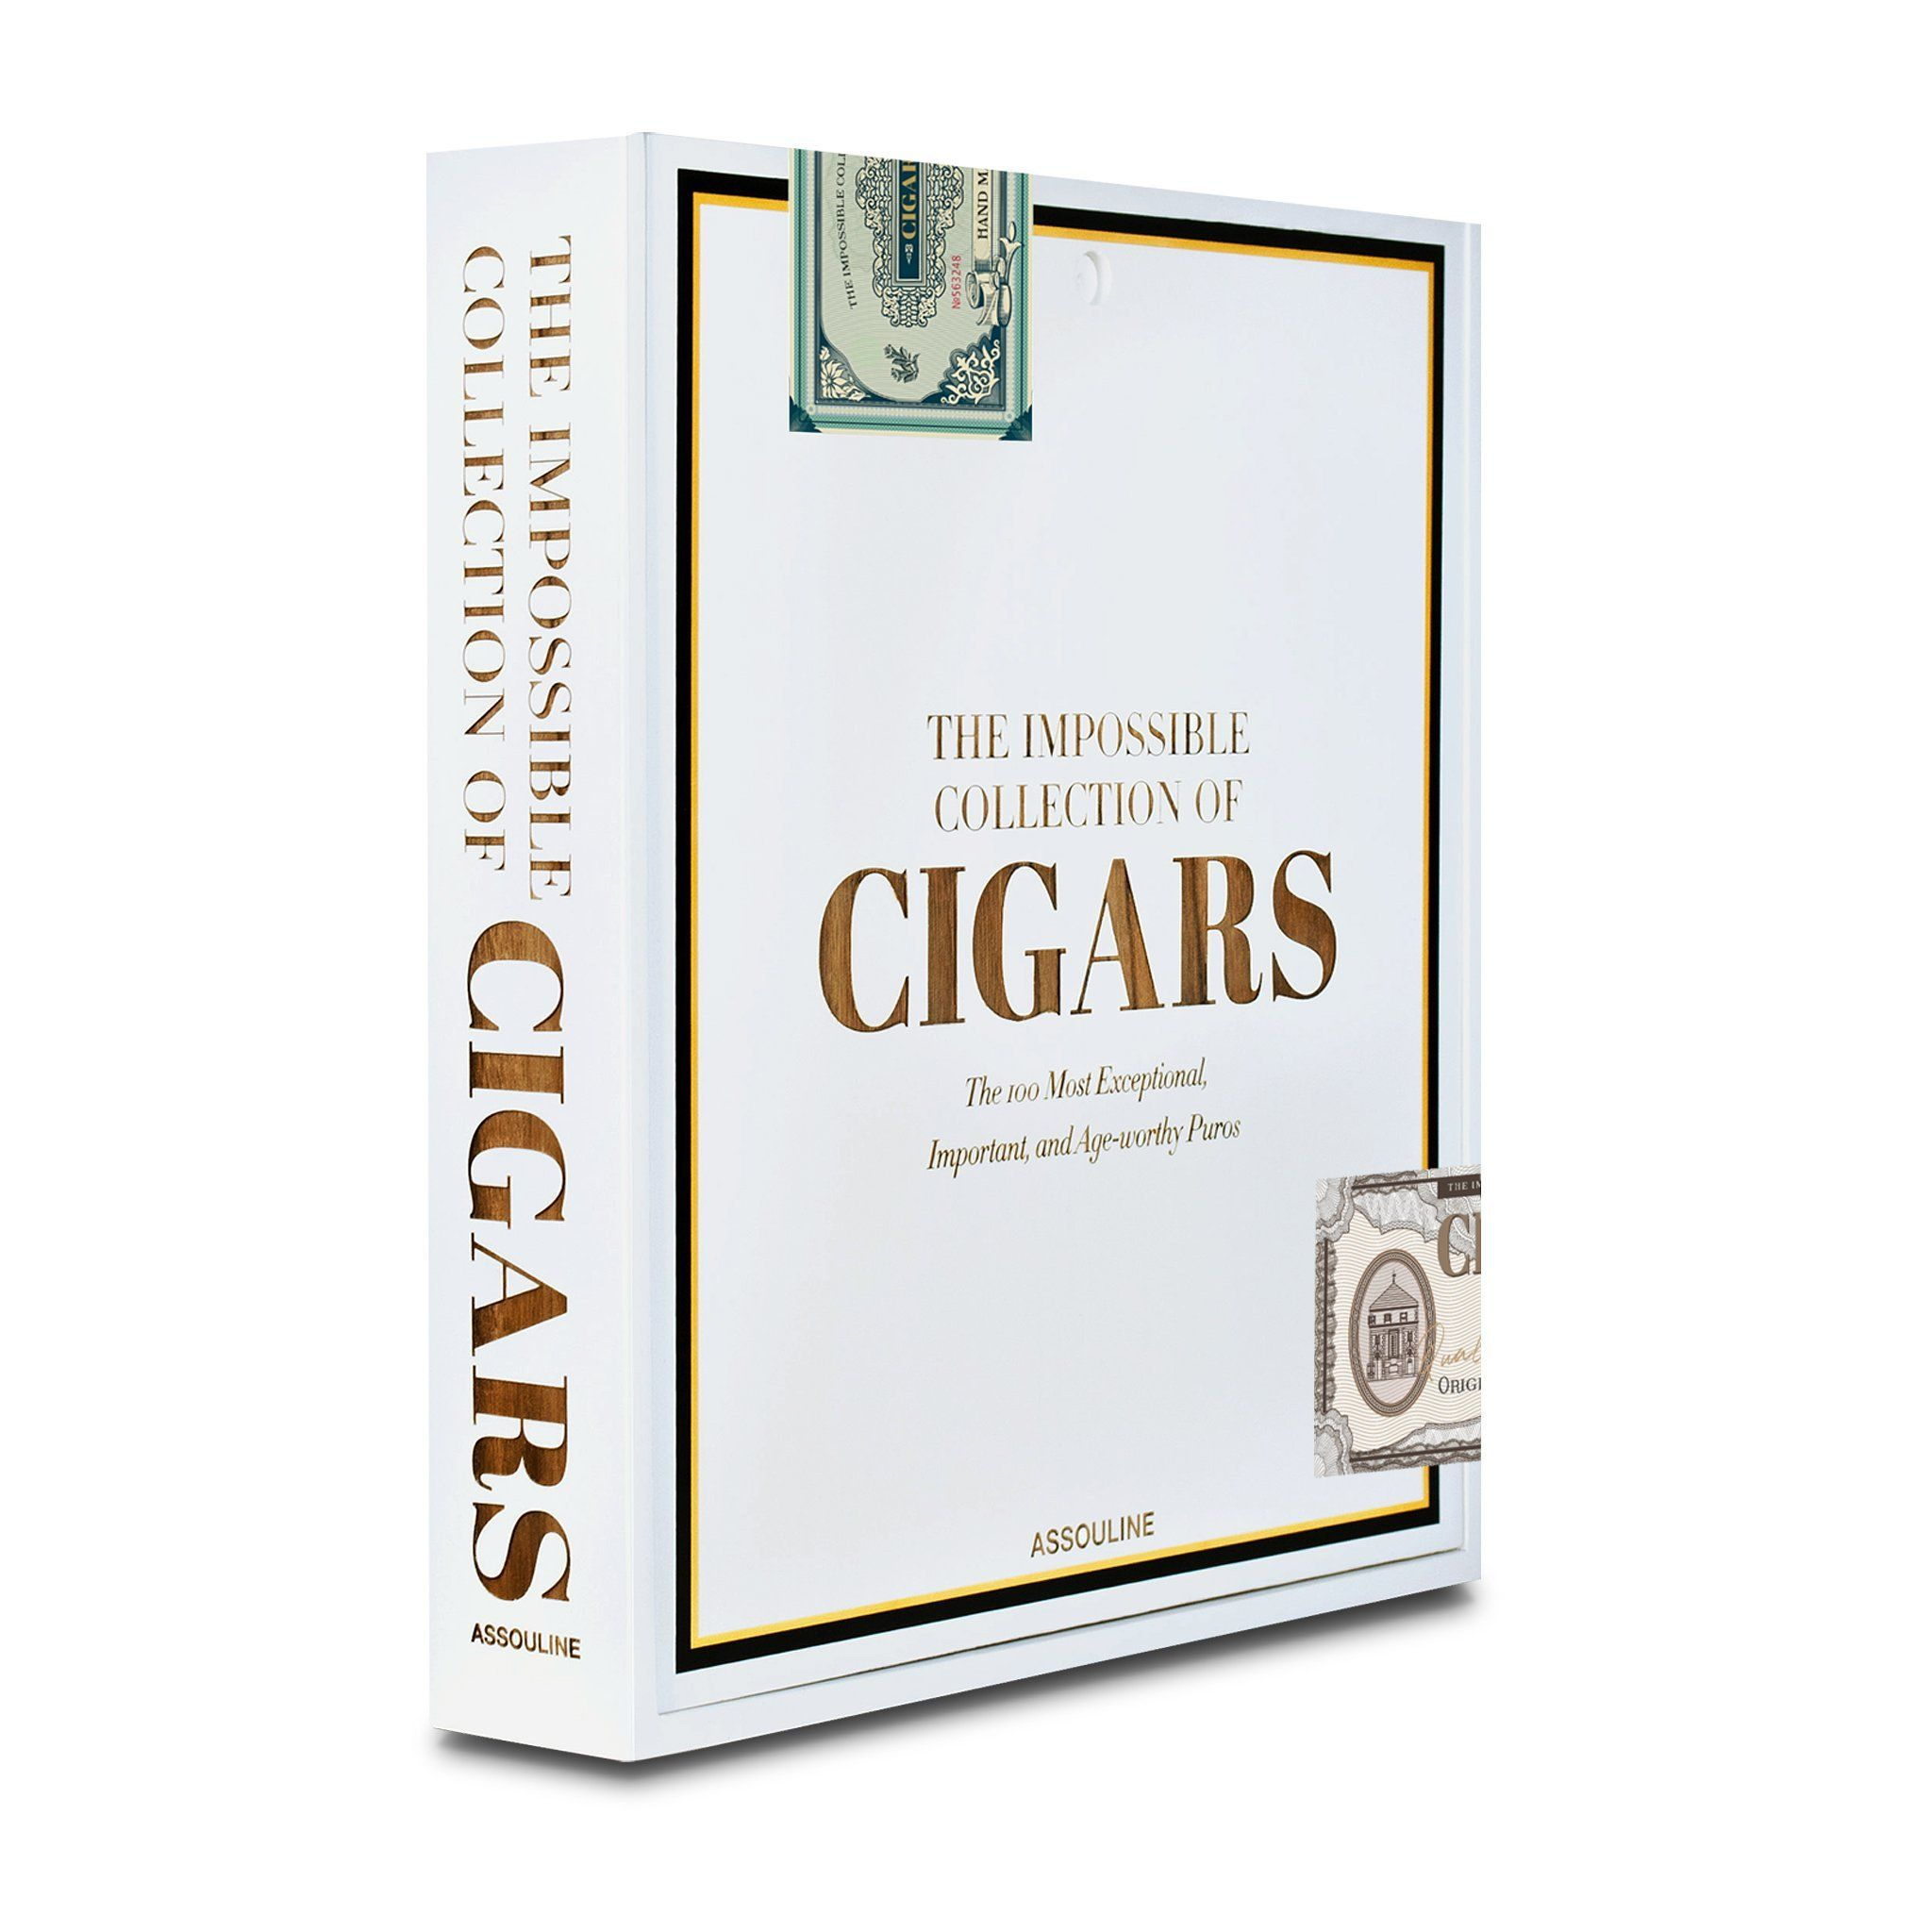 The Impossible Collection Of Cigars Cigars Champagne Corks Assouline